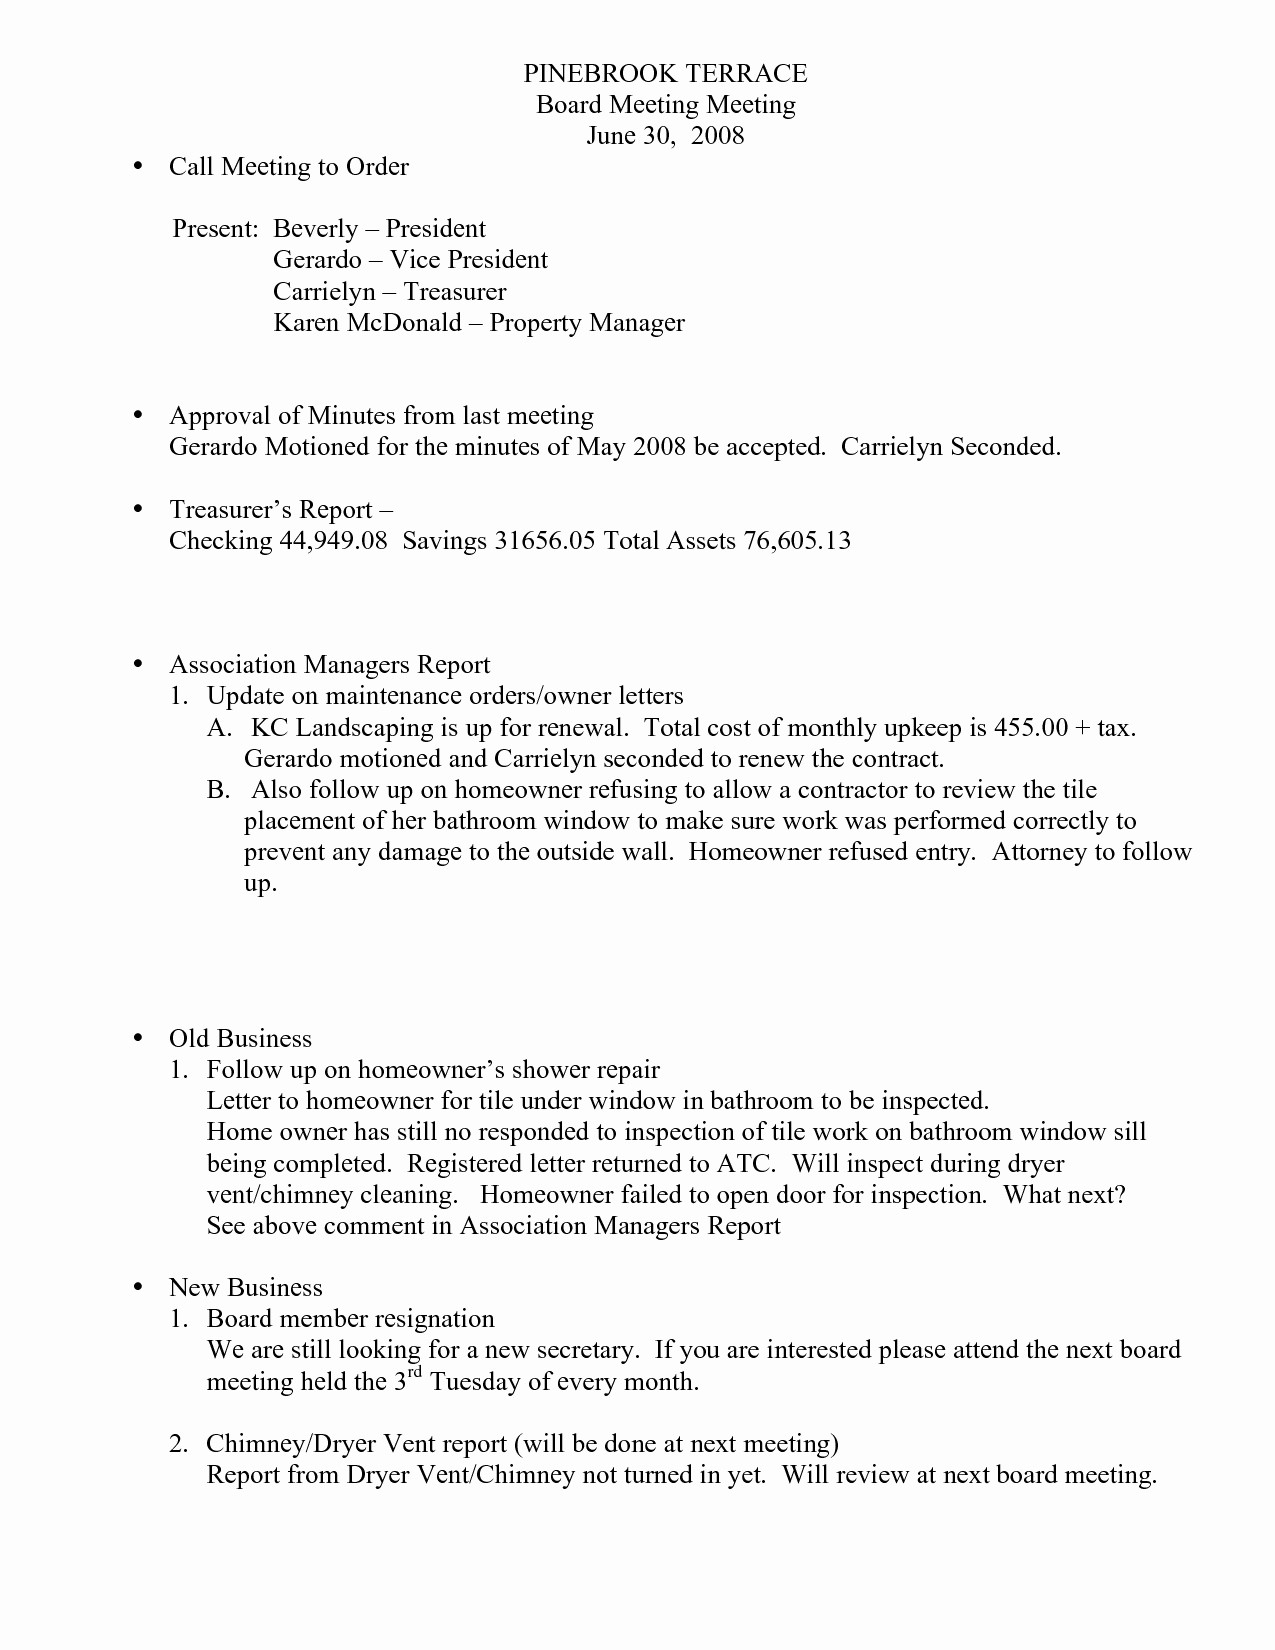 Resignation From Board Of Directors Awesome Resignation Letter From Board Directors Template